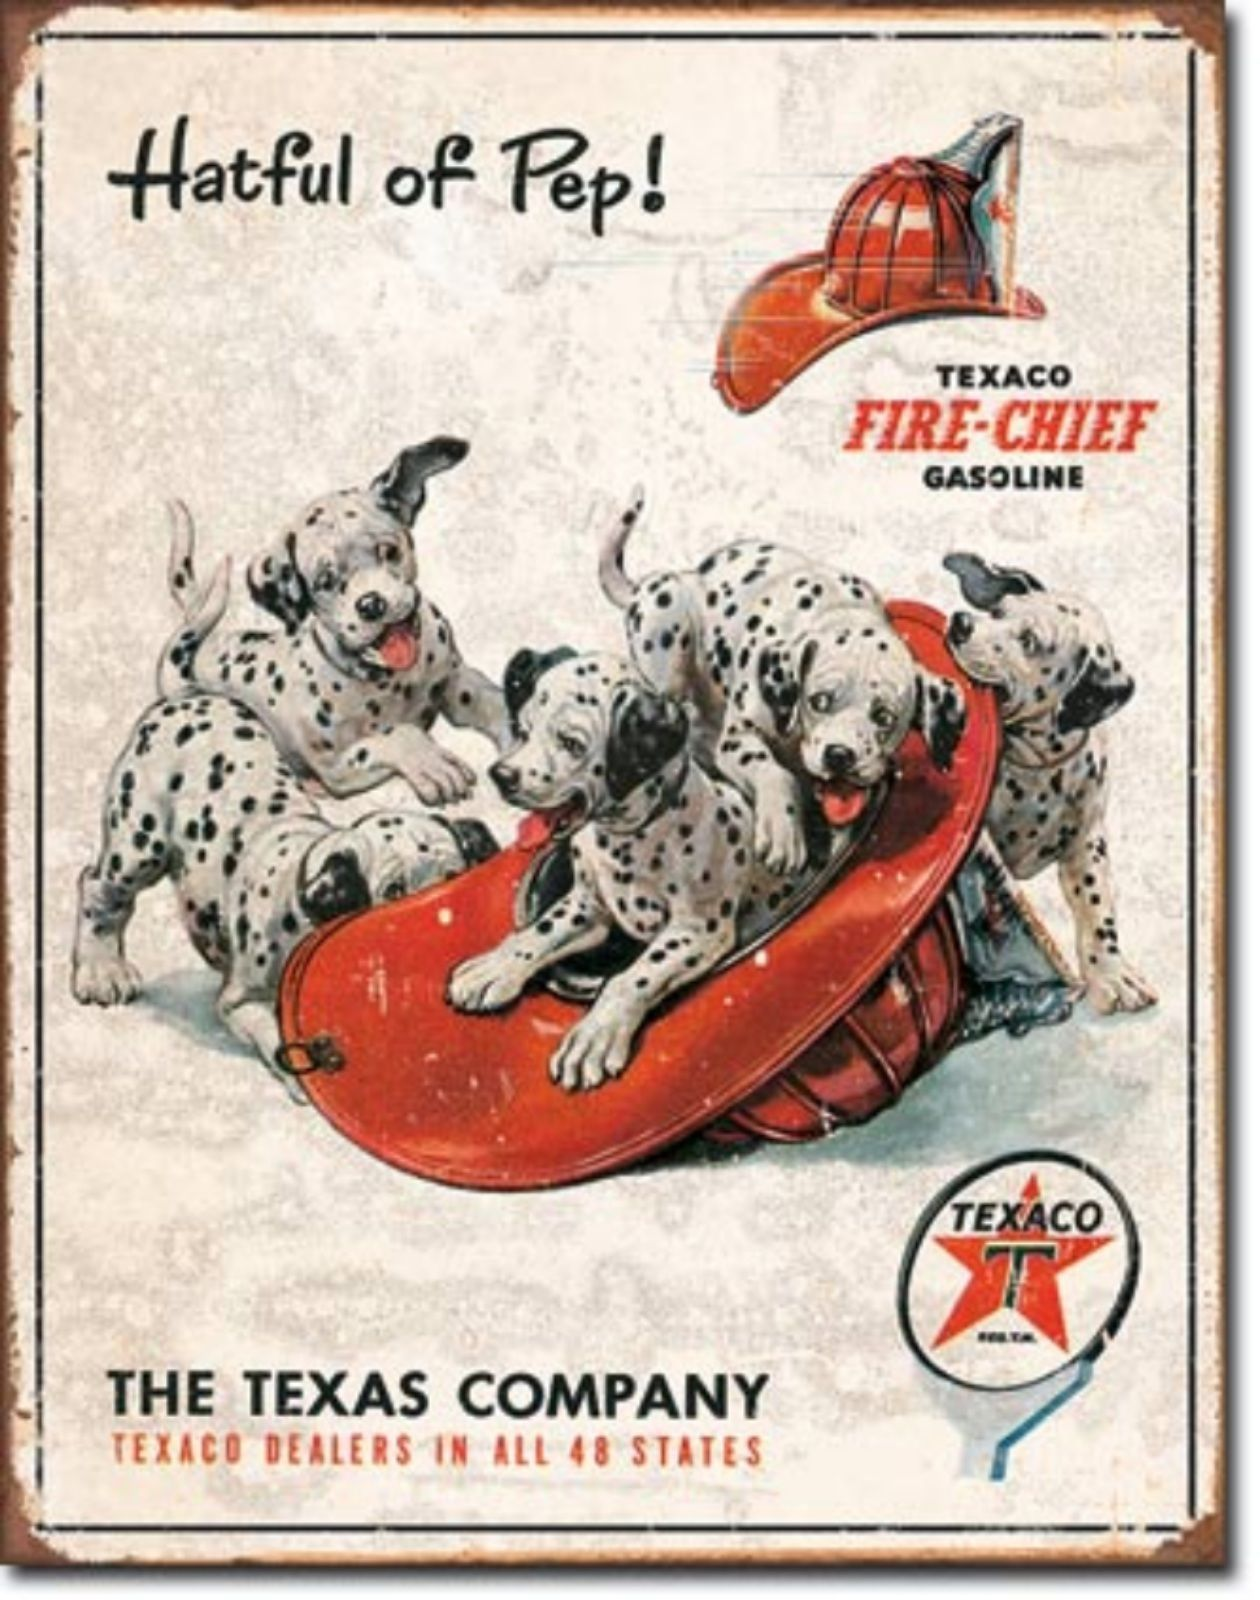 Texaco Gasoline Fire Chief Hatful of Pep Metal Sign Tin New Vintage Style #1928